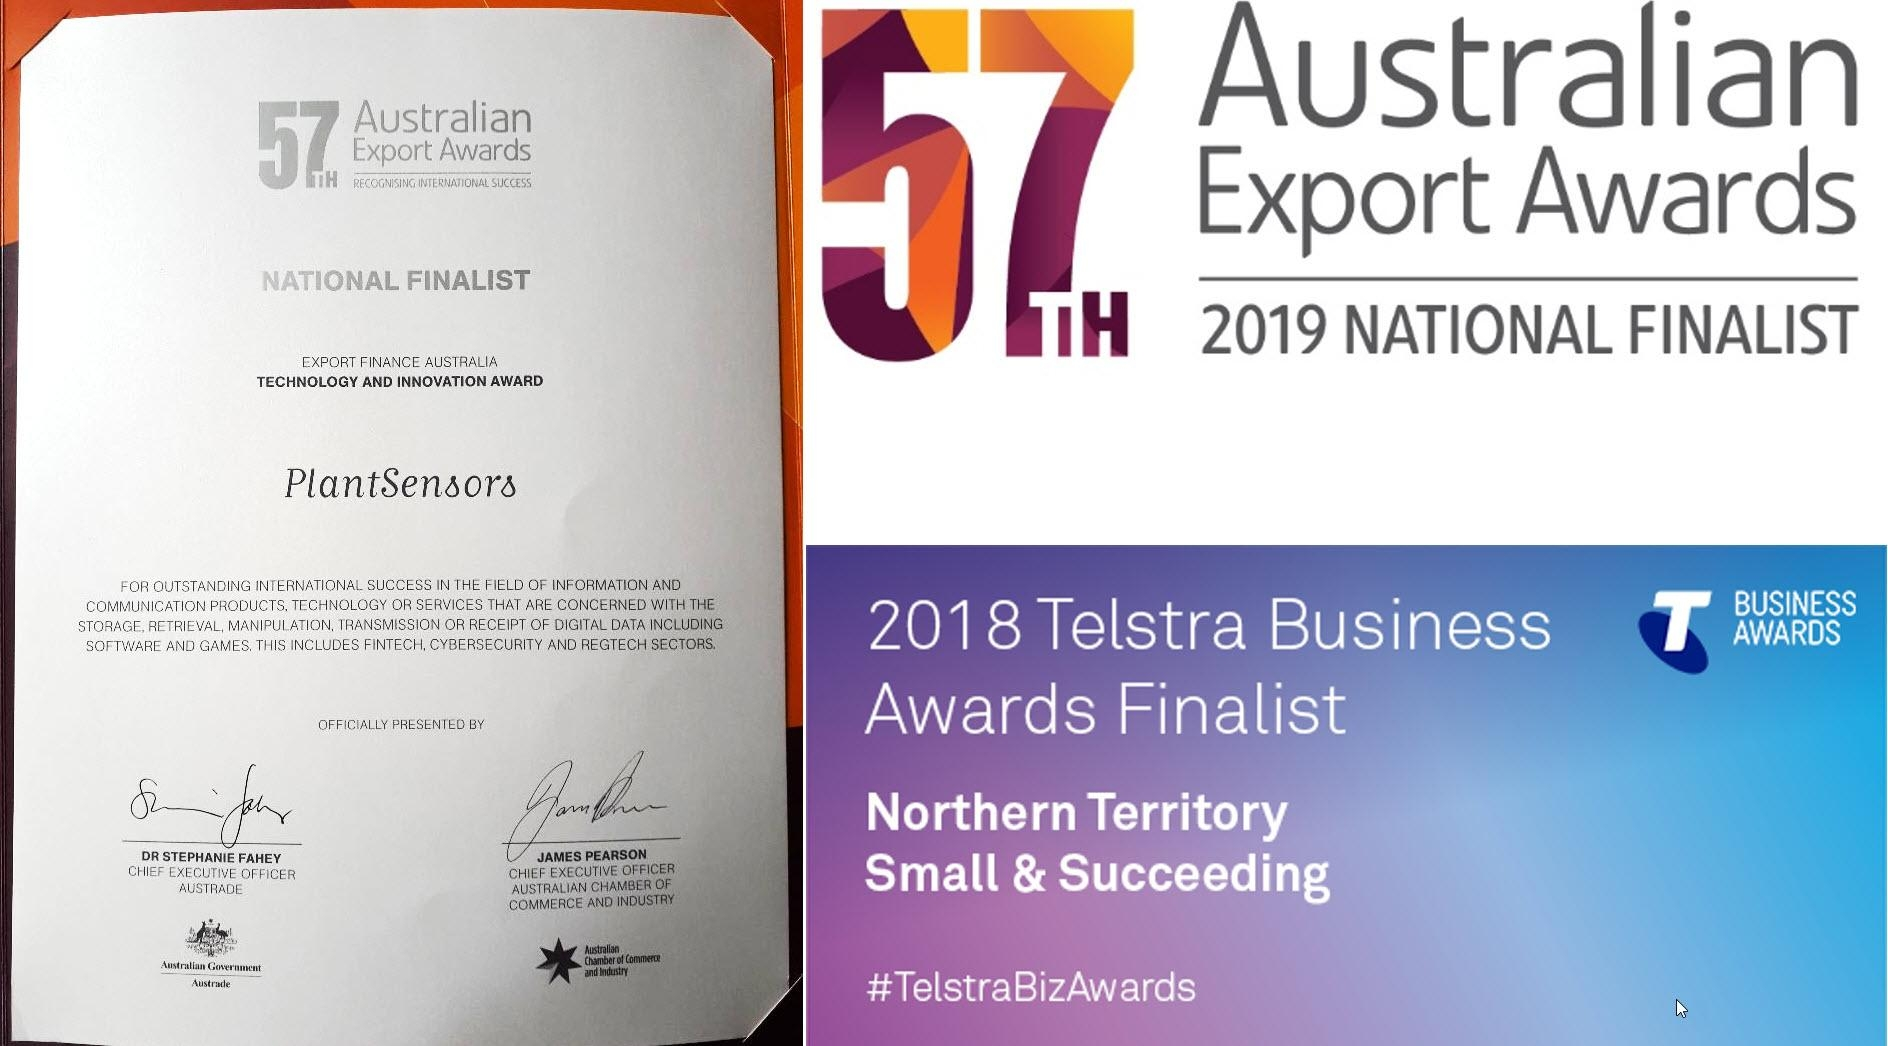 PlantSensors won the 2019 Northern Territory Export Awards for Technology and Innovation. We are also the 2019 National Finalist for Australian Export Awards for Technology and Innovation.